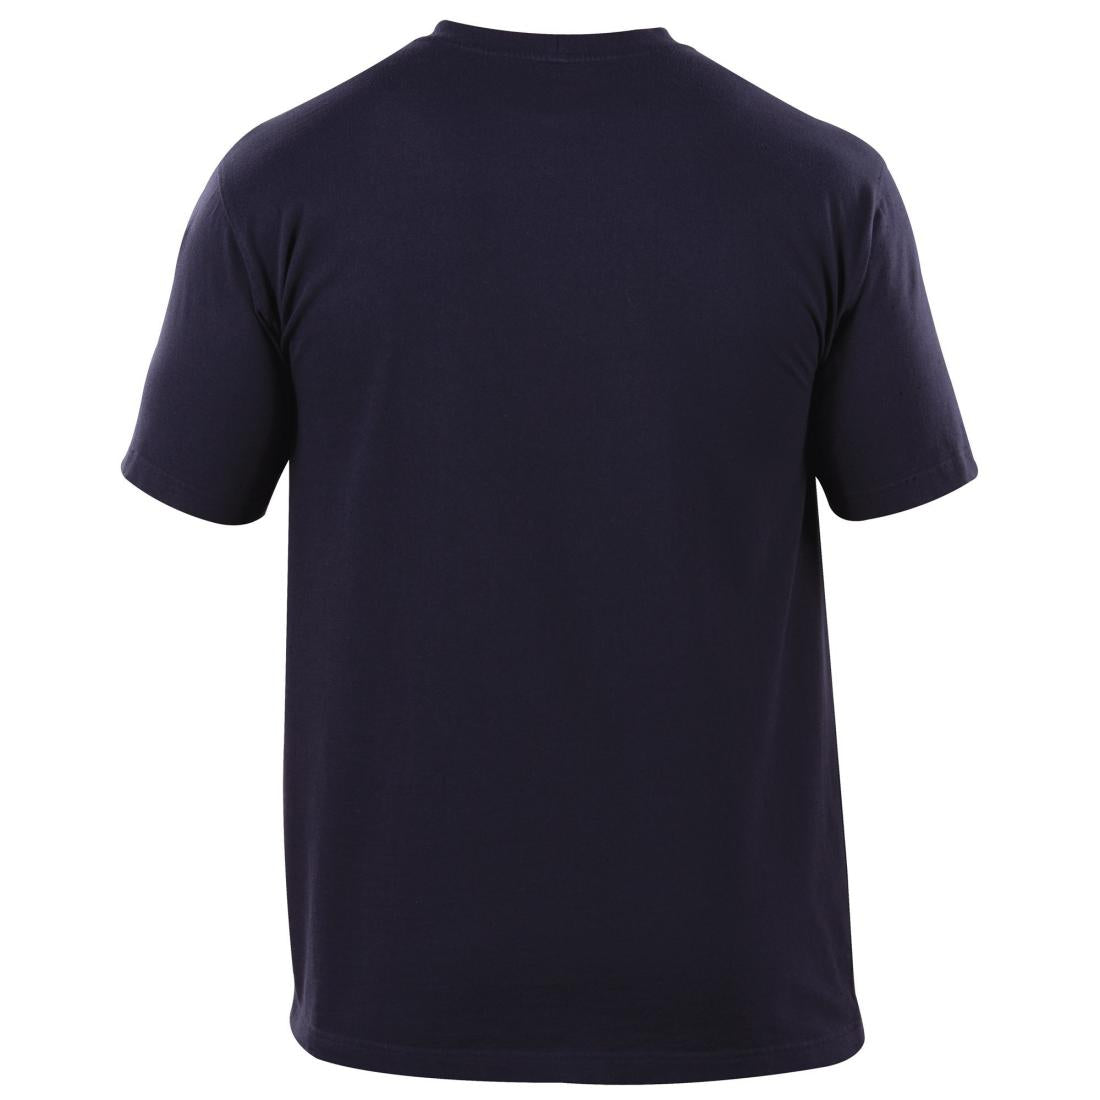 5.11 Tactical 71309 Men Professional Short Sleeve T-Shirt Fire Navy